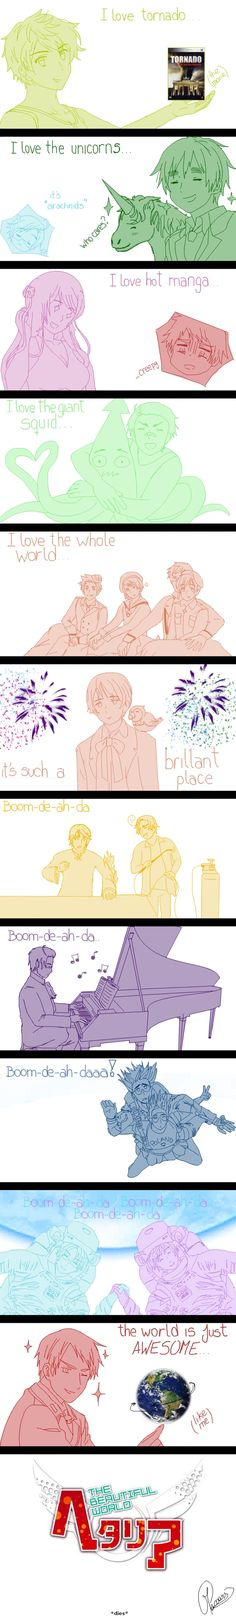 APH - BOOM DE-AH-DA - Part 3/3 FINAL by Silbido on deviantART